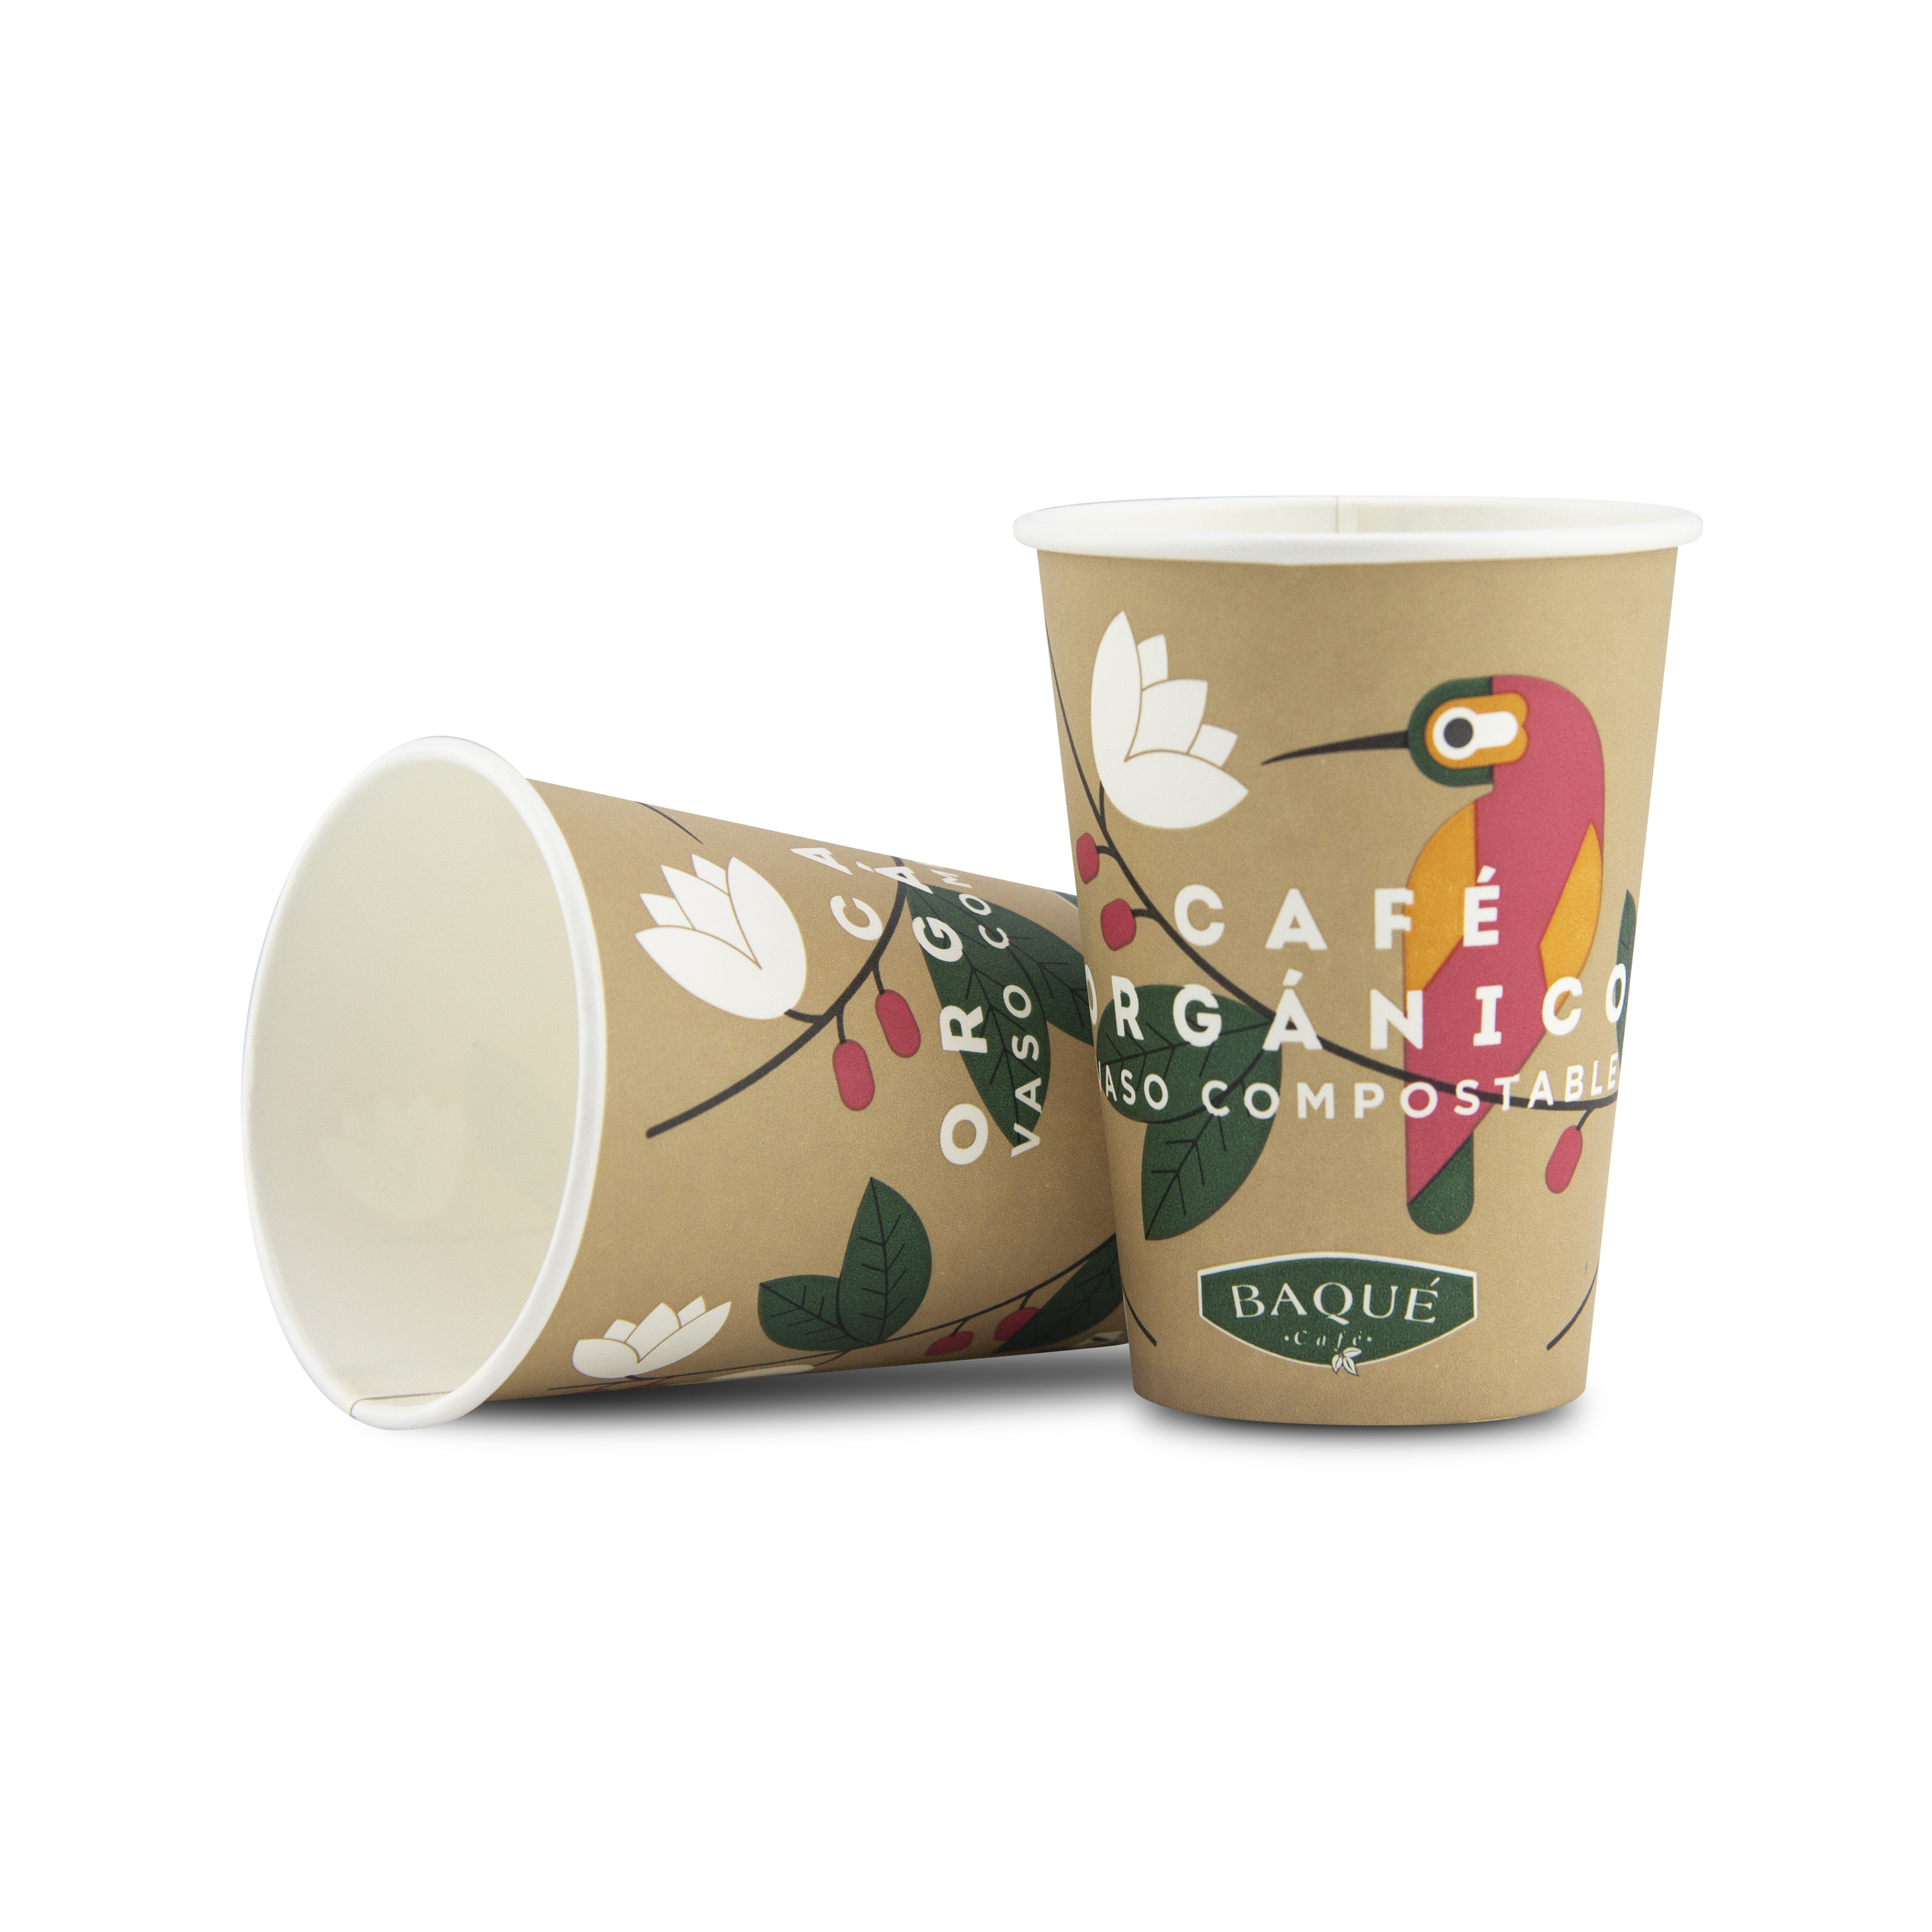 VASO COMPOSTABLE 7,5 OZ 100 UDS.